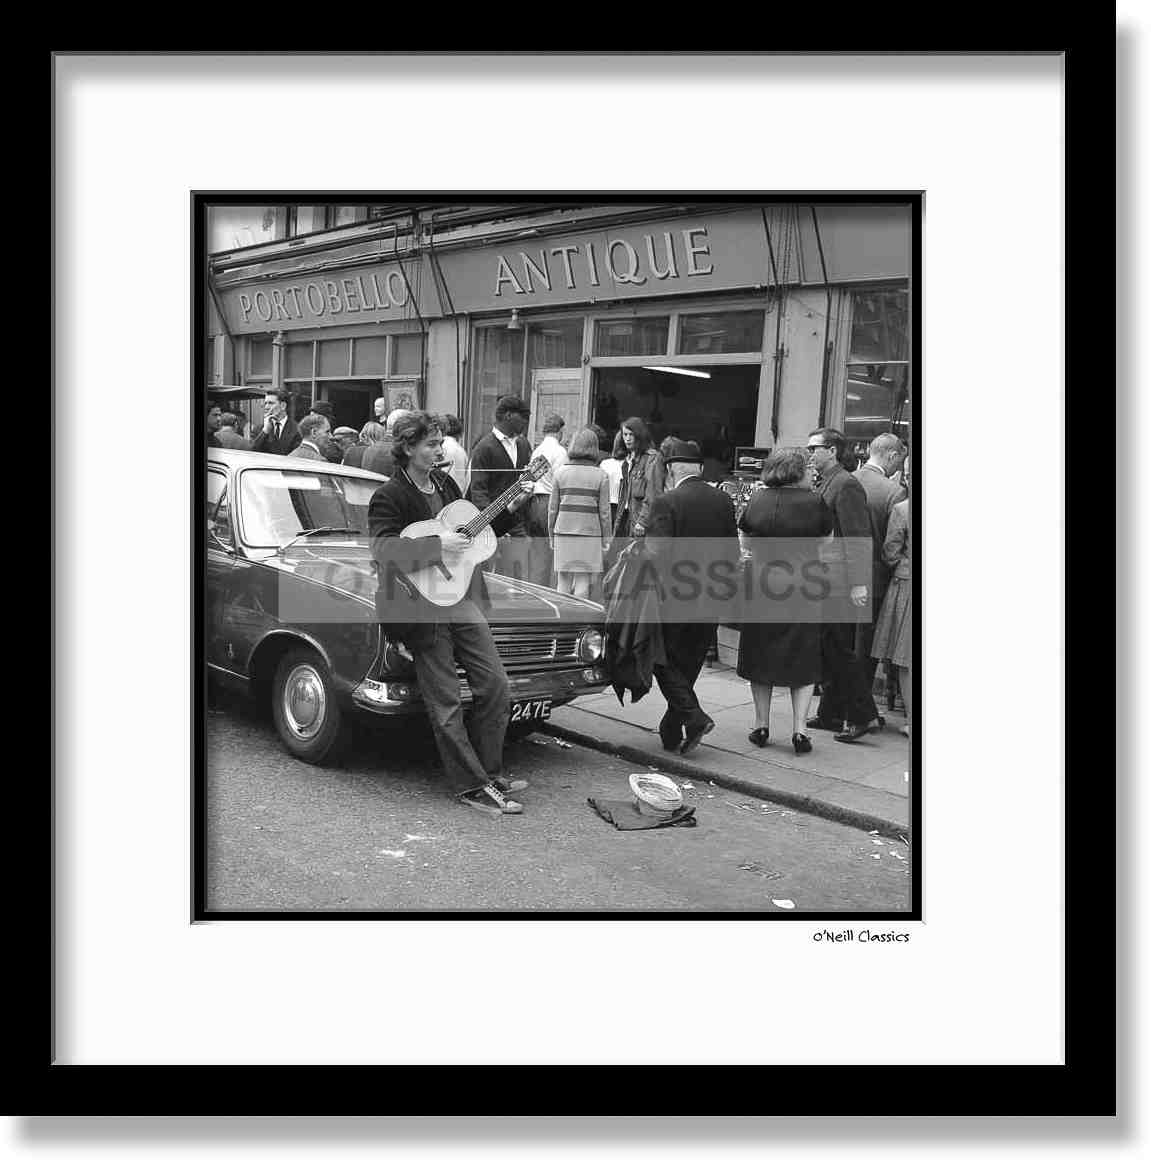 Portobello Antique Market 1967 - Framed B&W photograph